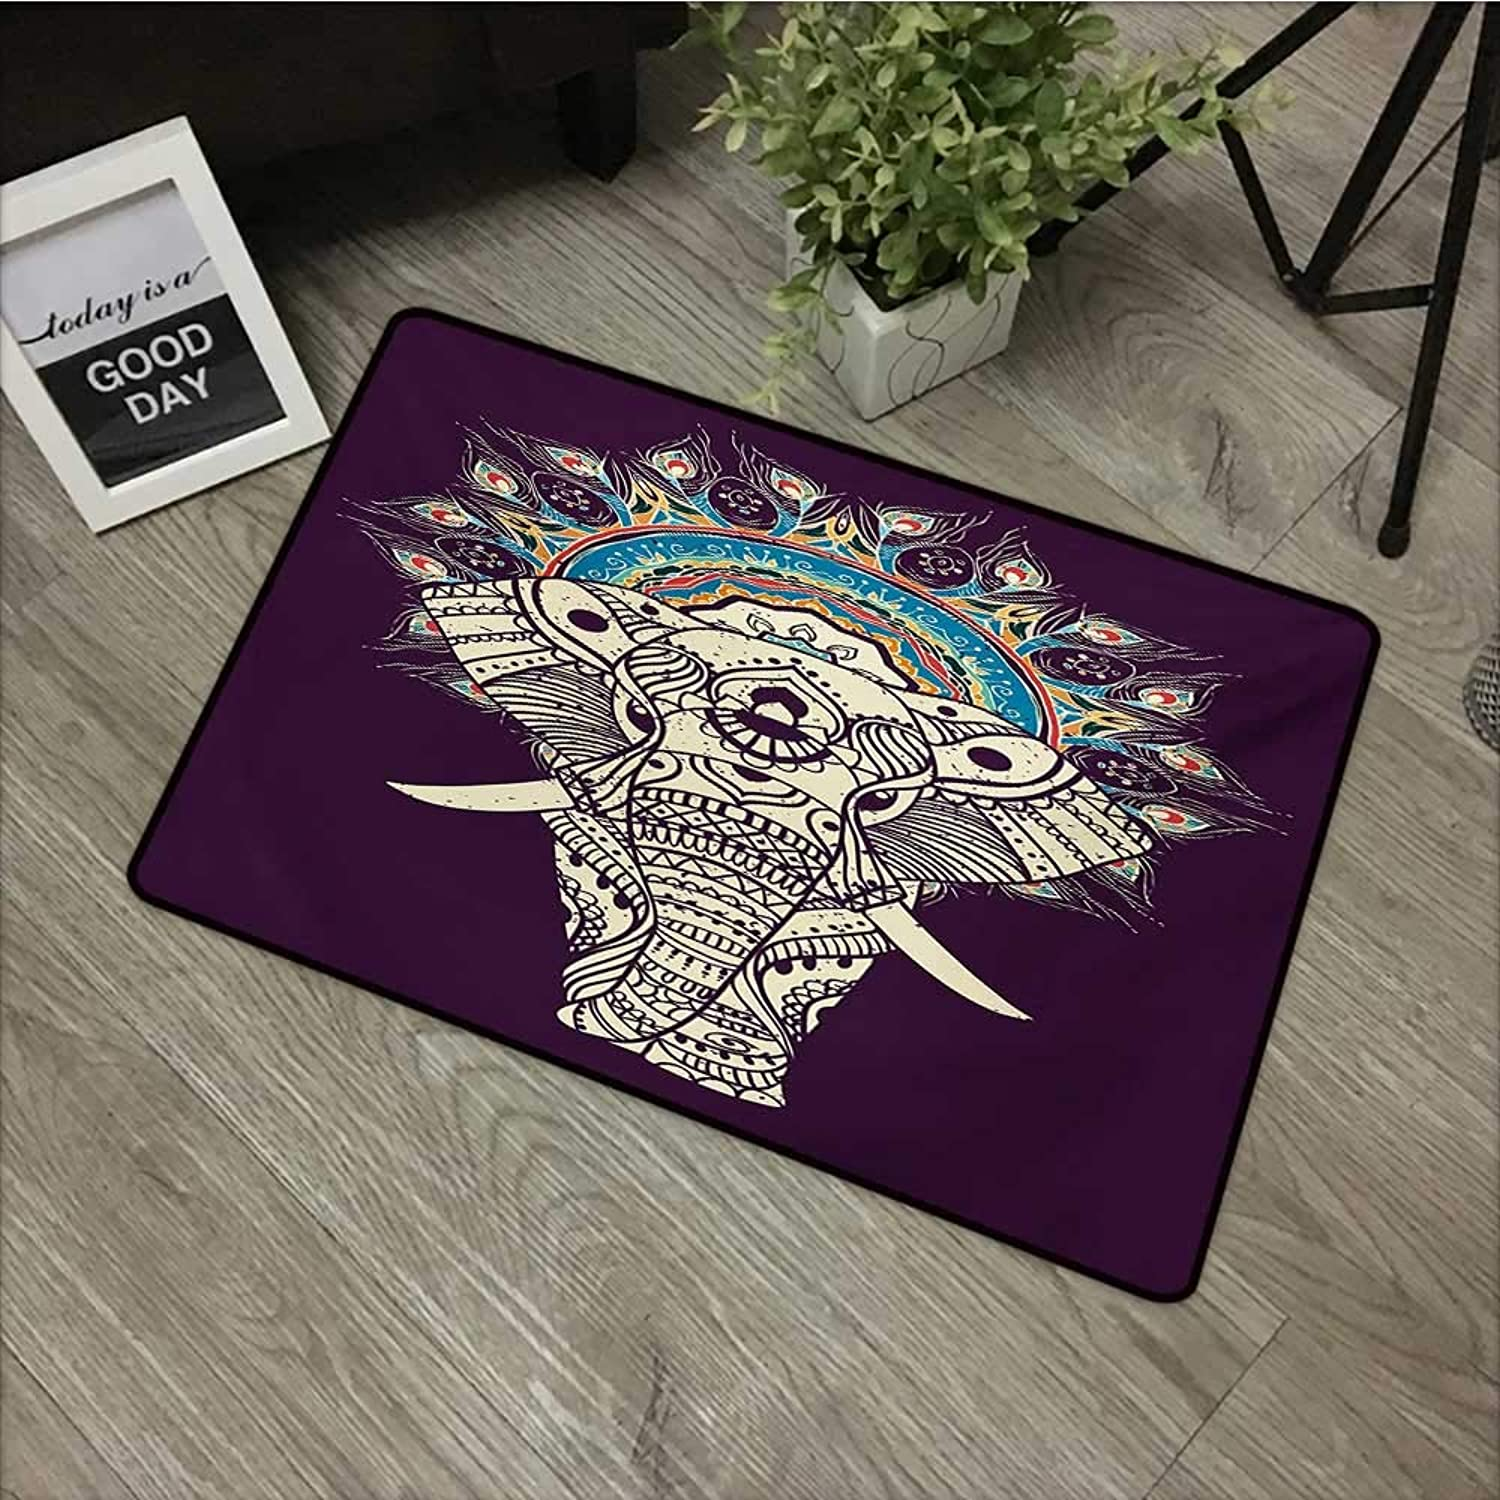 Living Room Door mat W35 x L59 INCH Ethnic,Ethnic Traditional Patterns with Swirl Floral Detail and Elephant with Plum Backdrop,Multicolor Non-Slip, with Non-Slip Backing,Non-Slip Door Mat Carpet